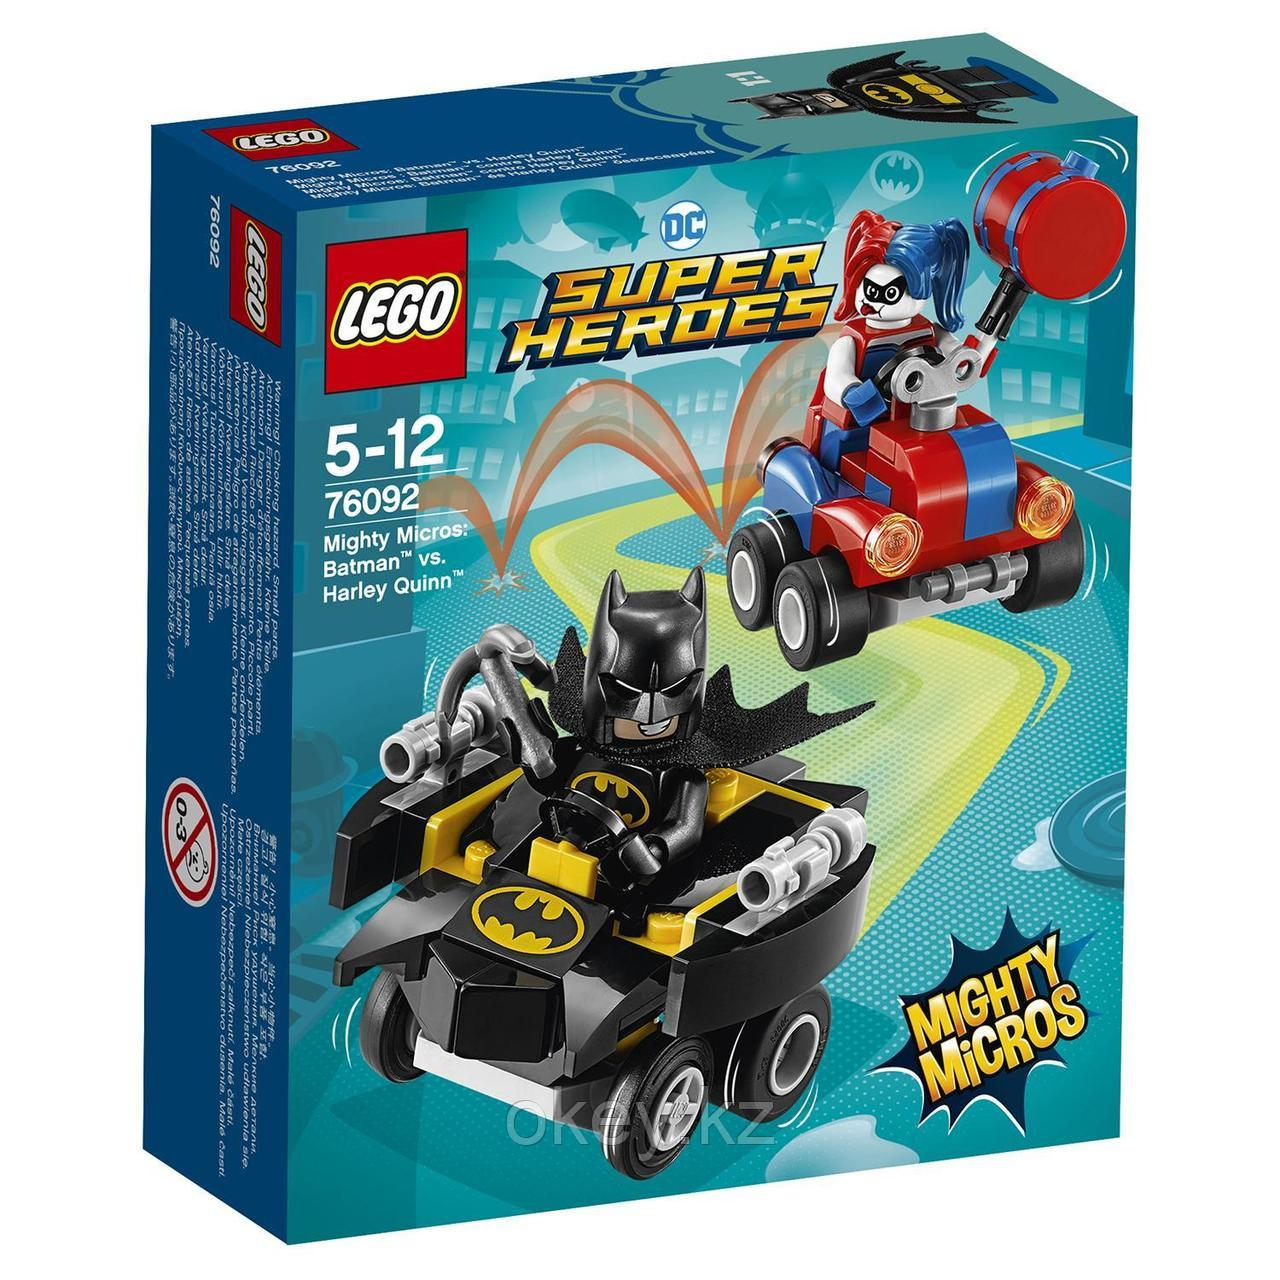 LEGO Super Heroes Mighty Micros: Бэтмен против Харли Квин 76092